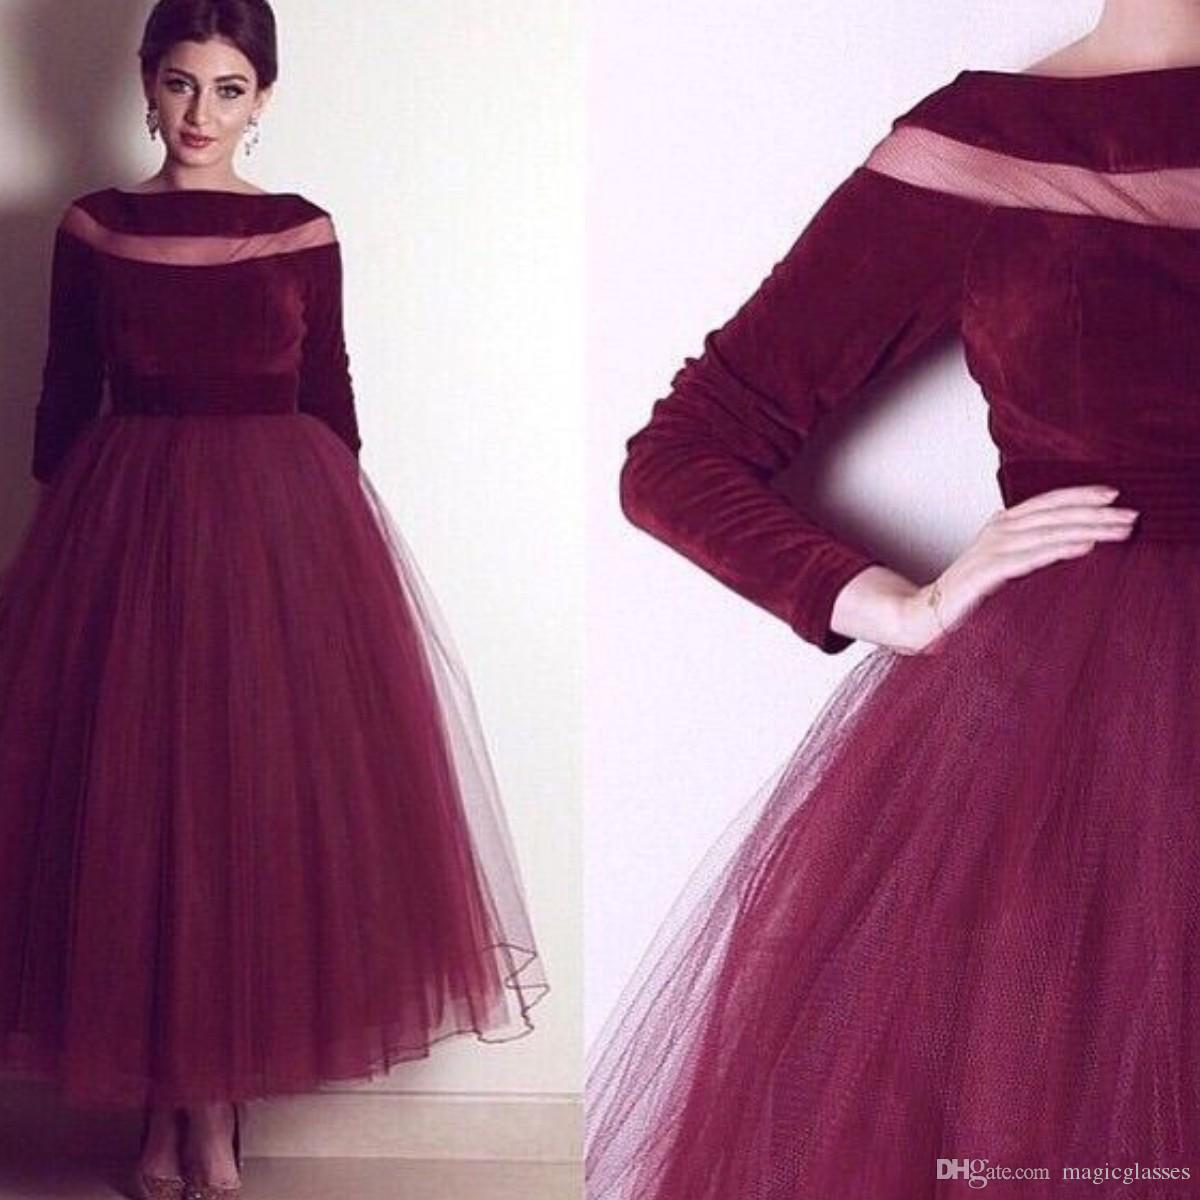 Burgundy Velvet Evening Gown 2018 A-Line Prom Dresses with Long Sleeve Boat Neck Long Formal Pageant Gowns vestidos de noiva Ankle Length